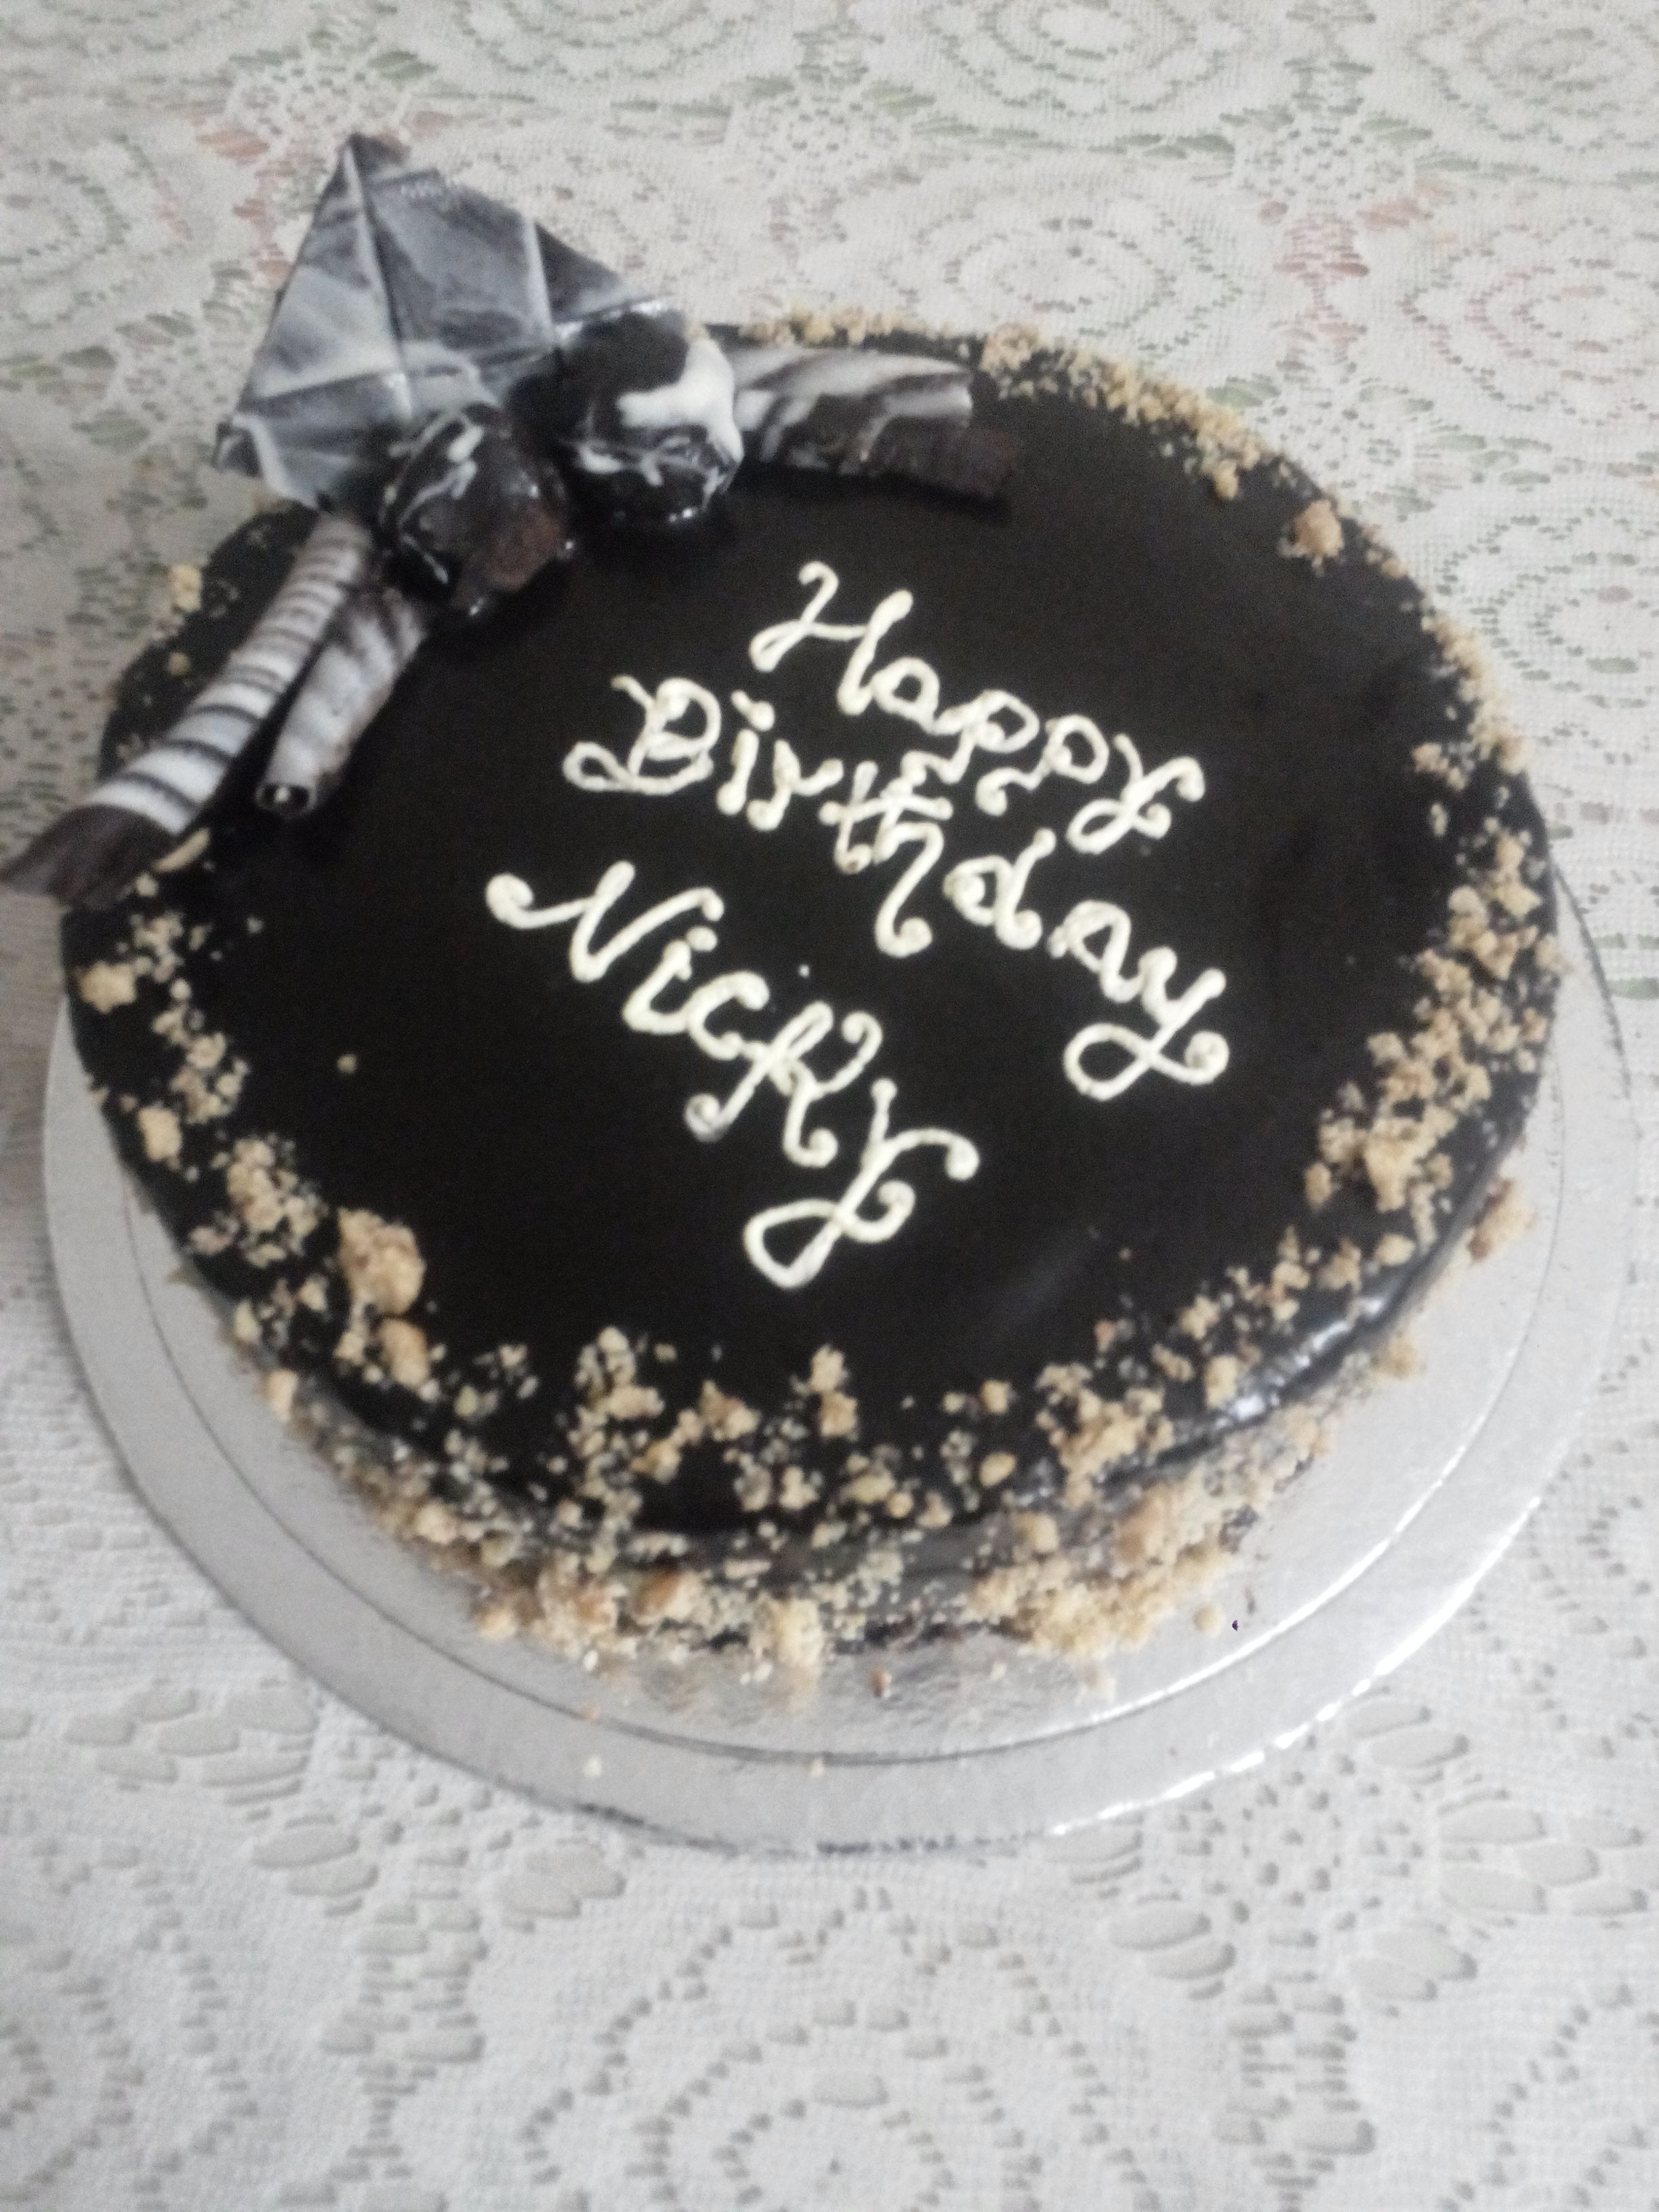 27 Excellent Image Of Order Birthday Cakes Online Chocolate Truffle Cake Bangalore